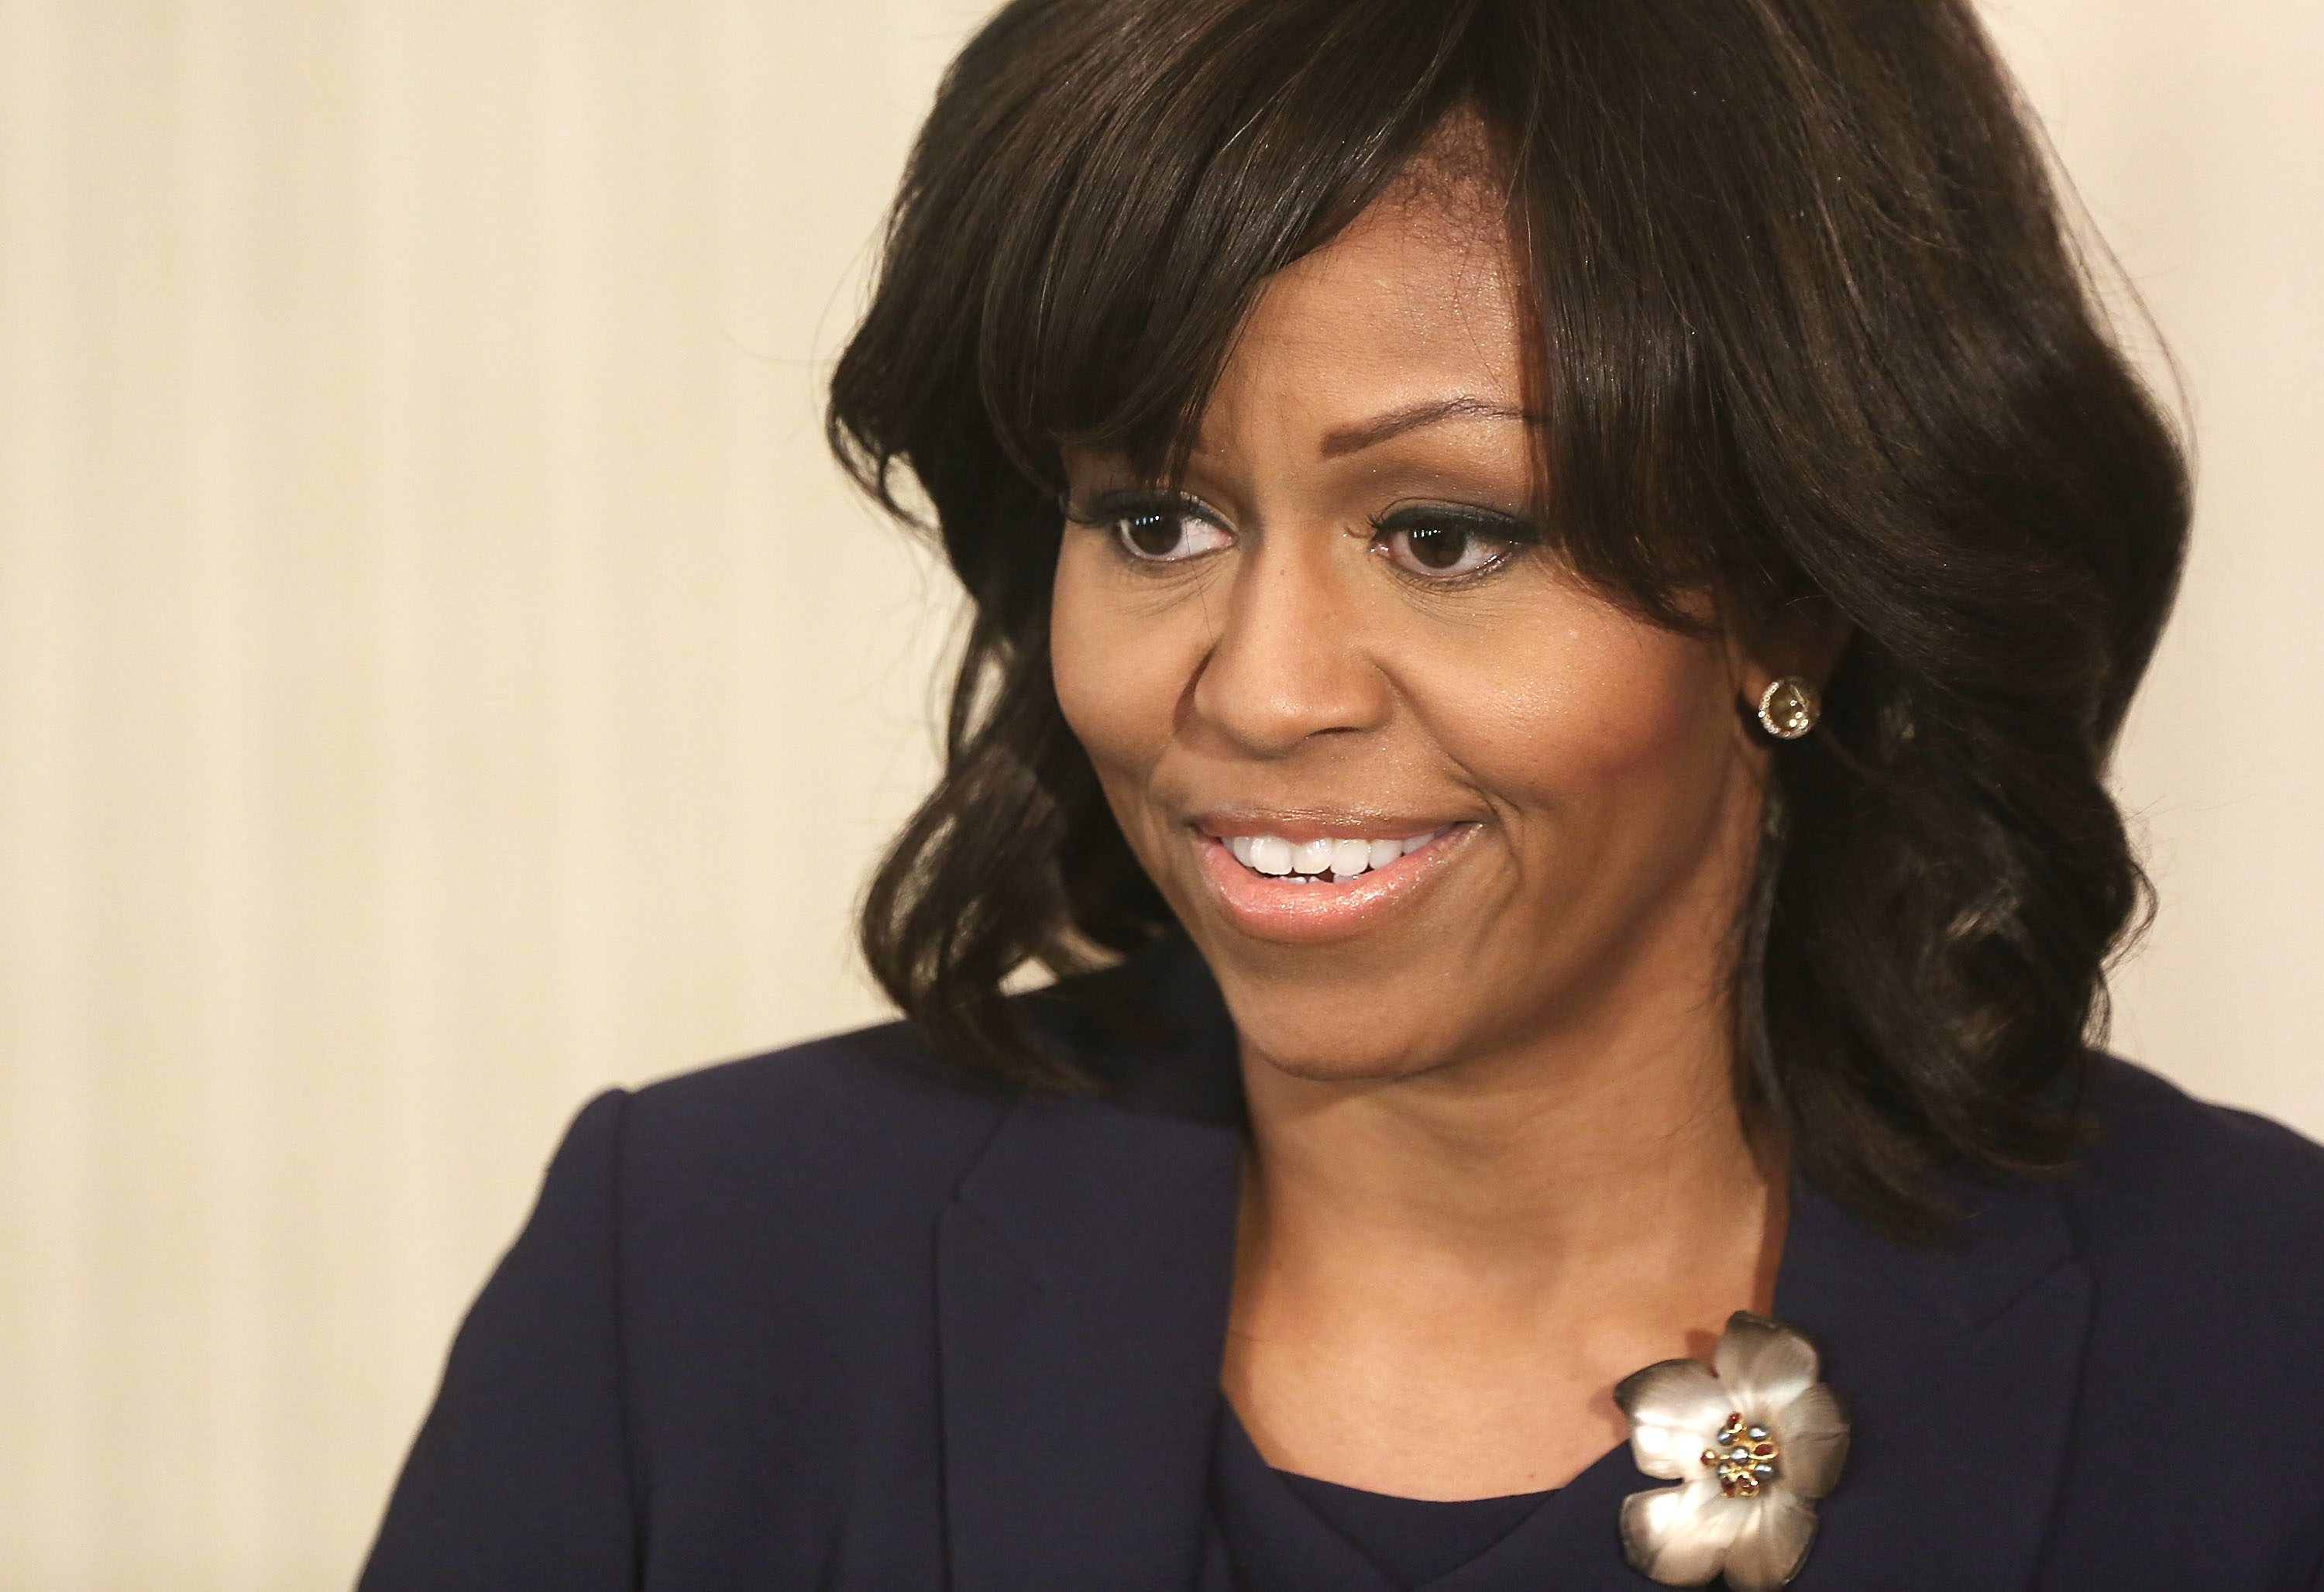 U.S. first lady Michelle Obama announced the Mayors Challenge to End Veteran Homelessness as part of her Joining Forces Initiative in June 2014. (Photo by Alex Wong/Getty Images)